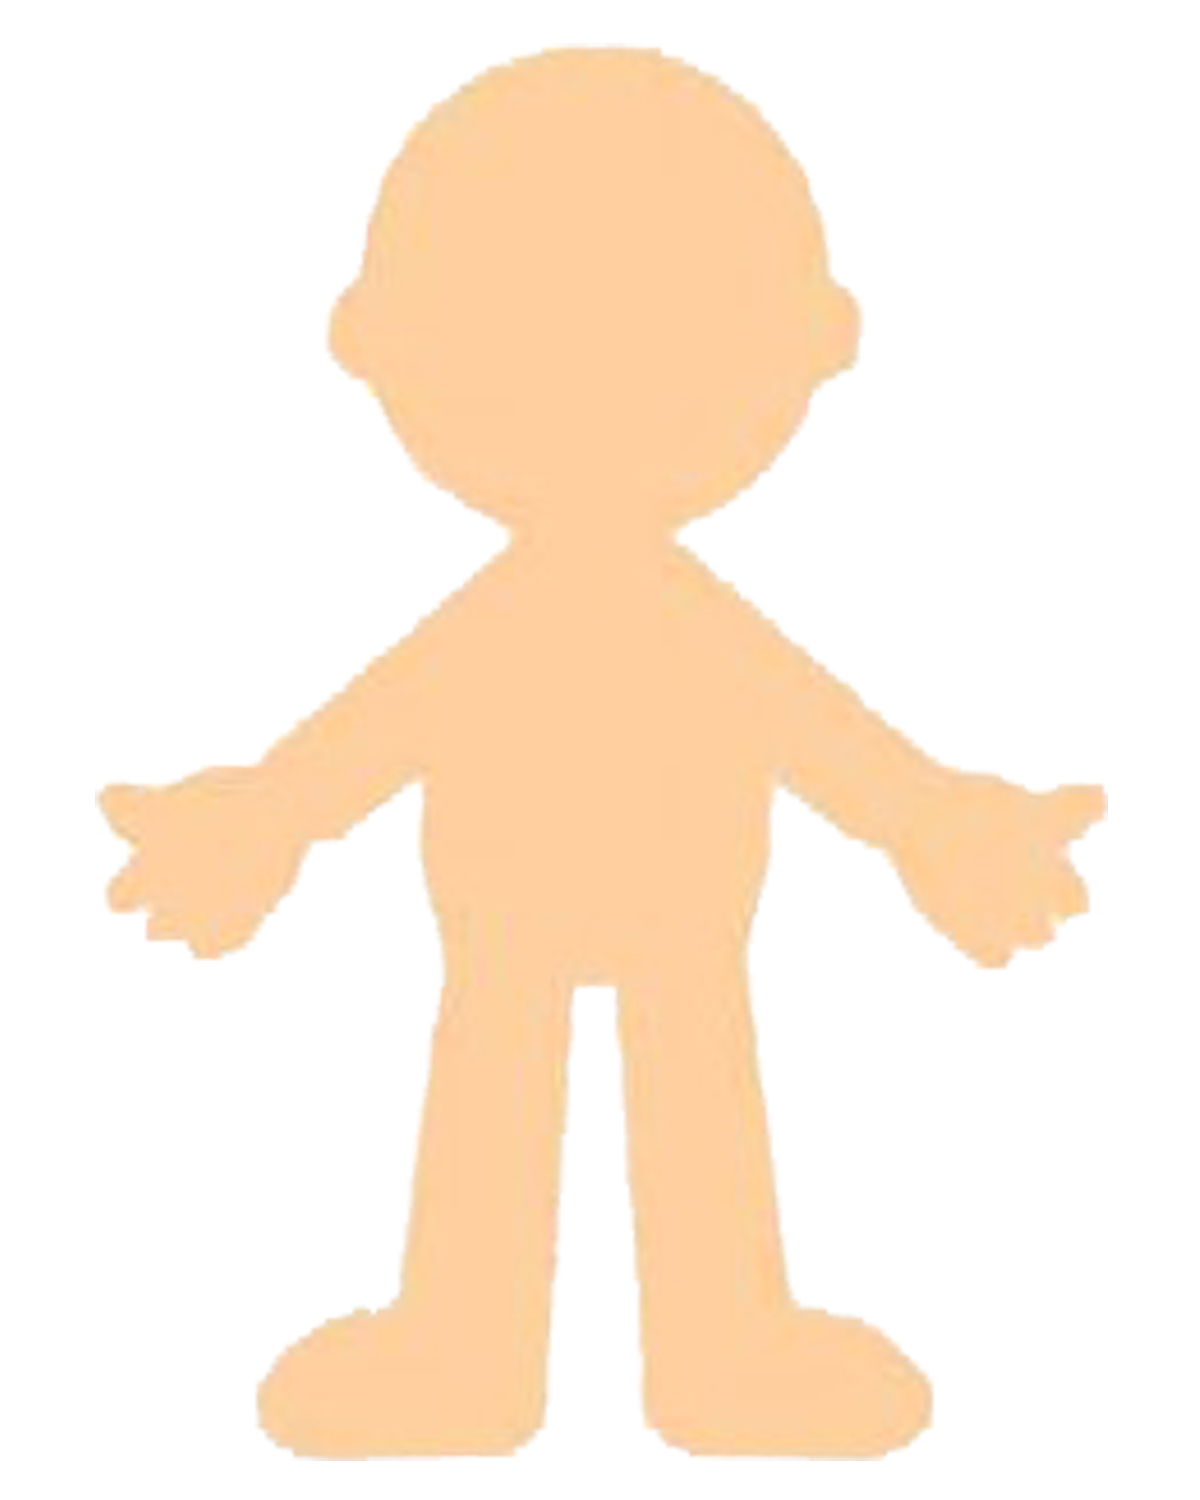 Tactueux image throughout printable paper doll body